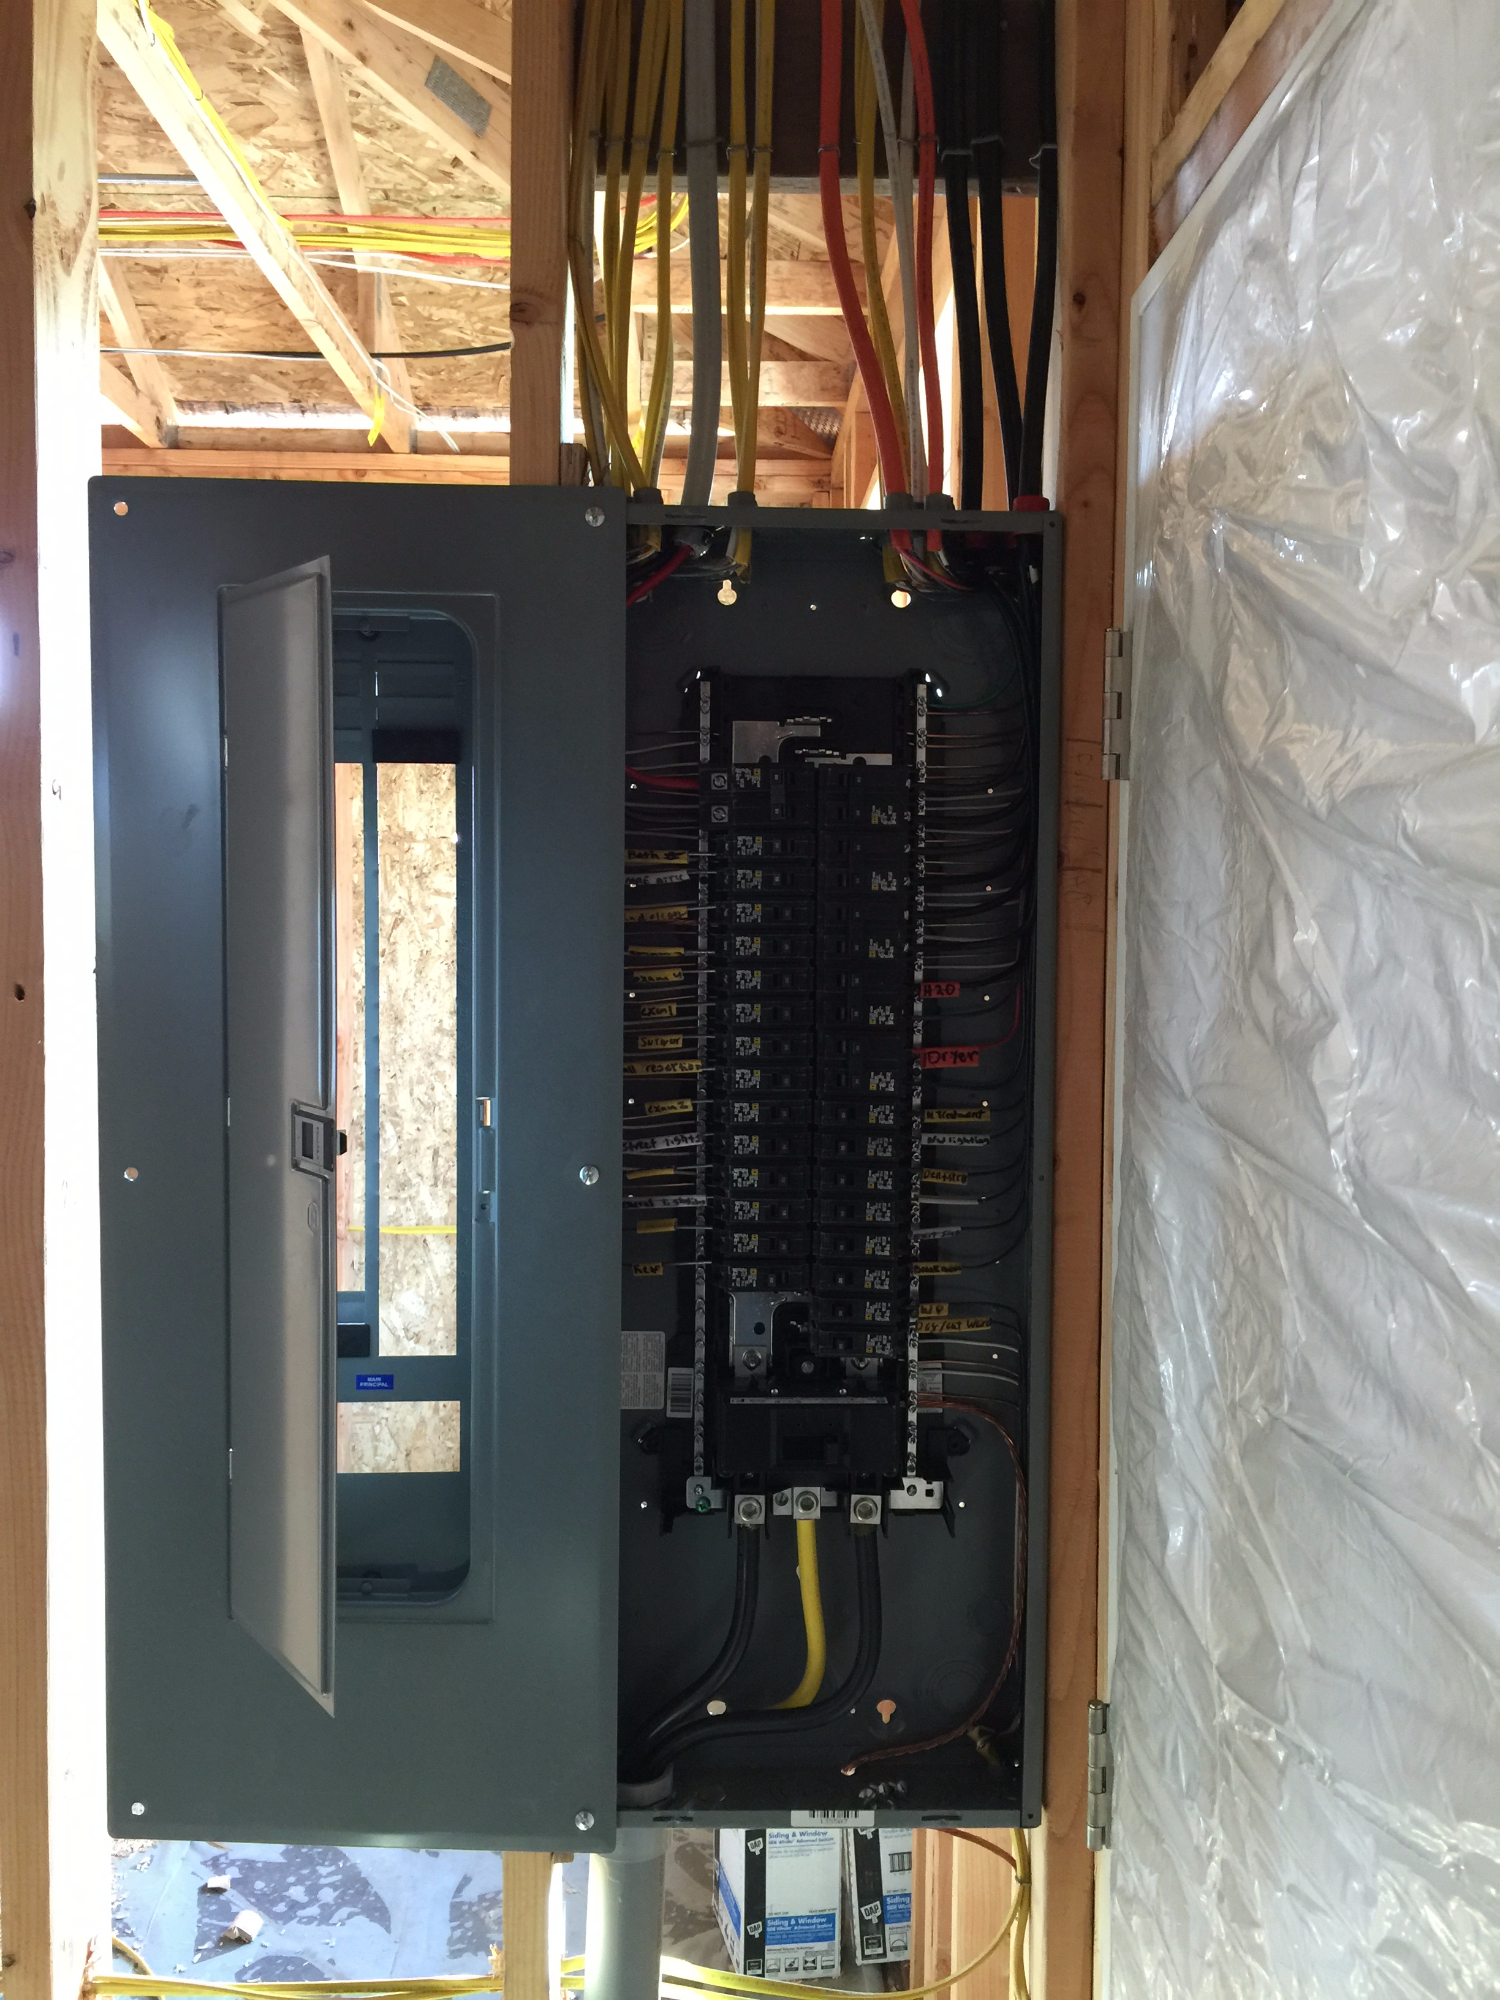 panel wiring jobs wiring solutions rh rausco com control panel wiring jobs in dubai control panel wiring jobs in bangalore